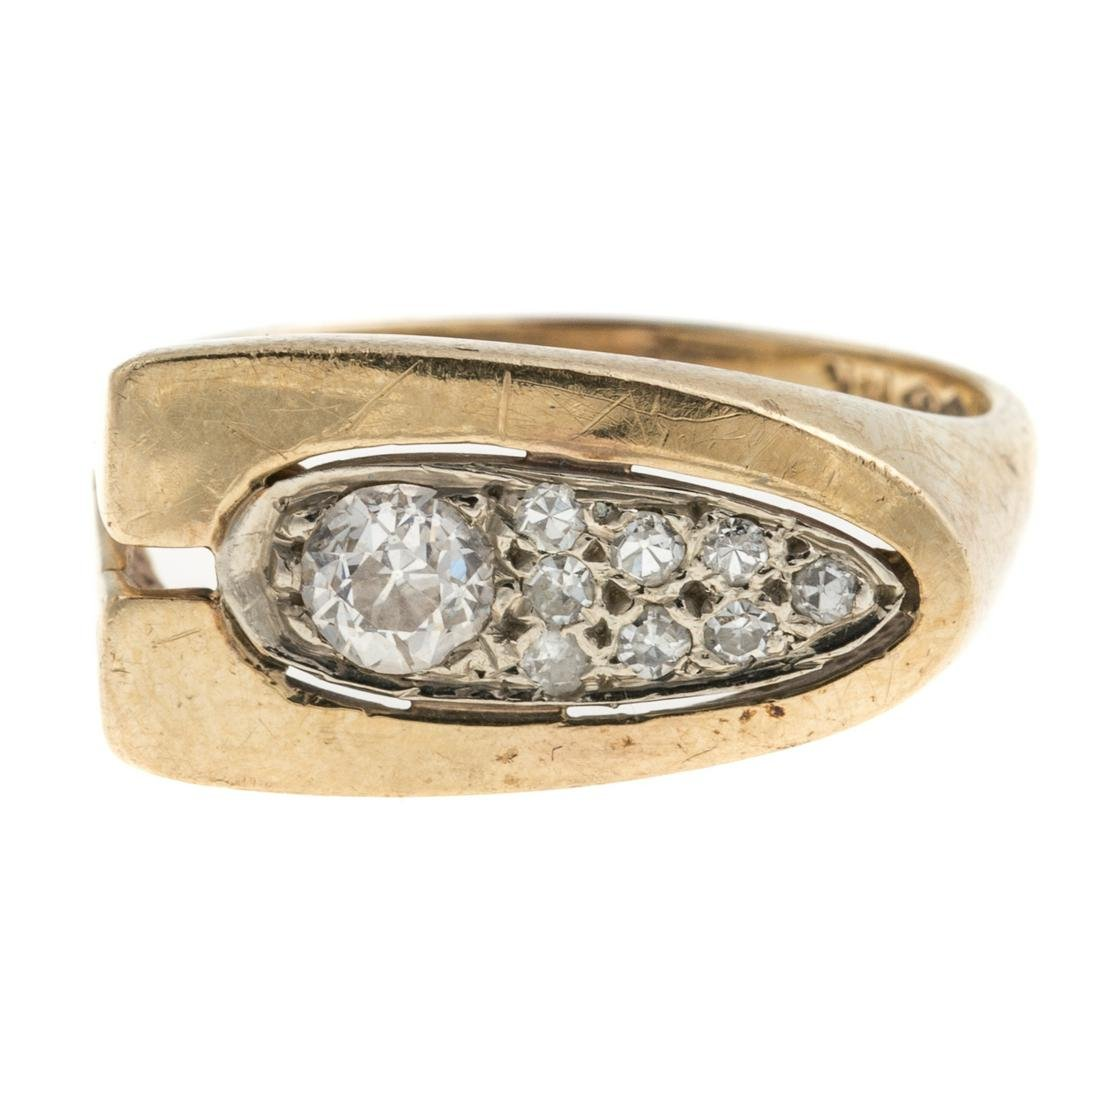 A Pave Diamond Contemporary Ring in 14K